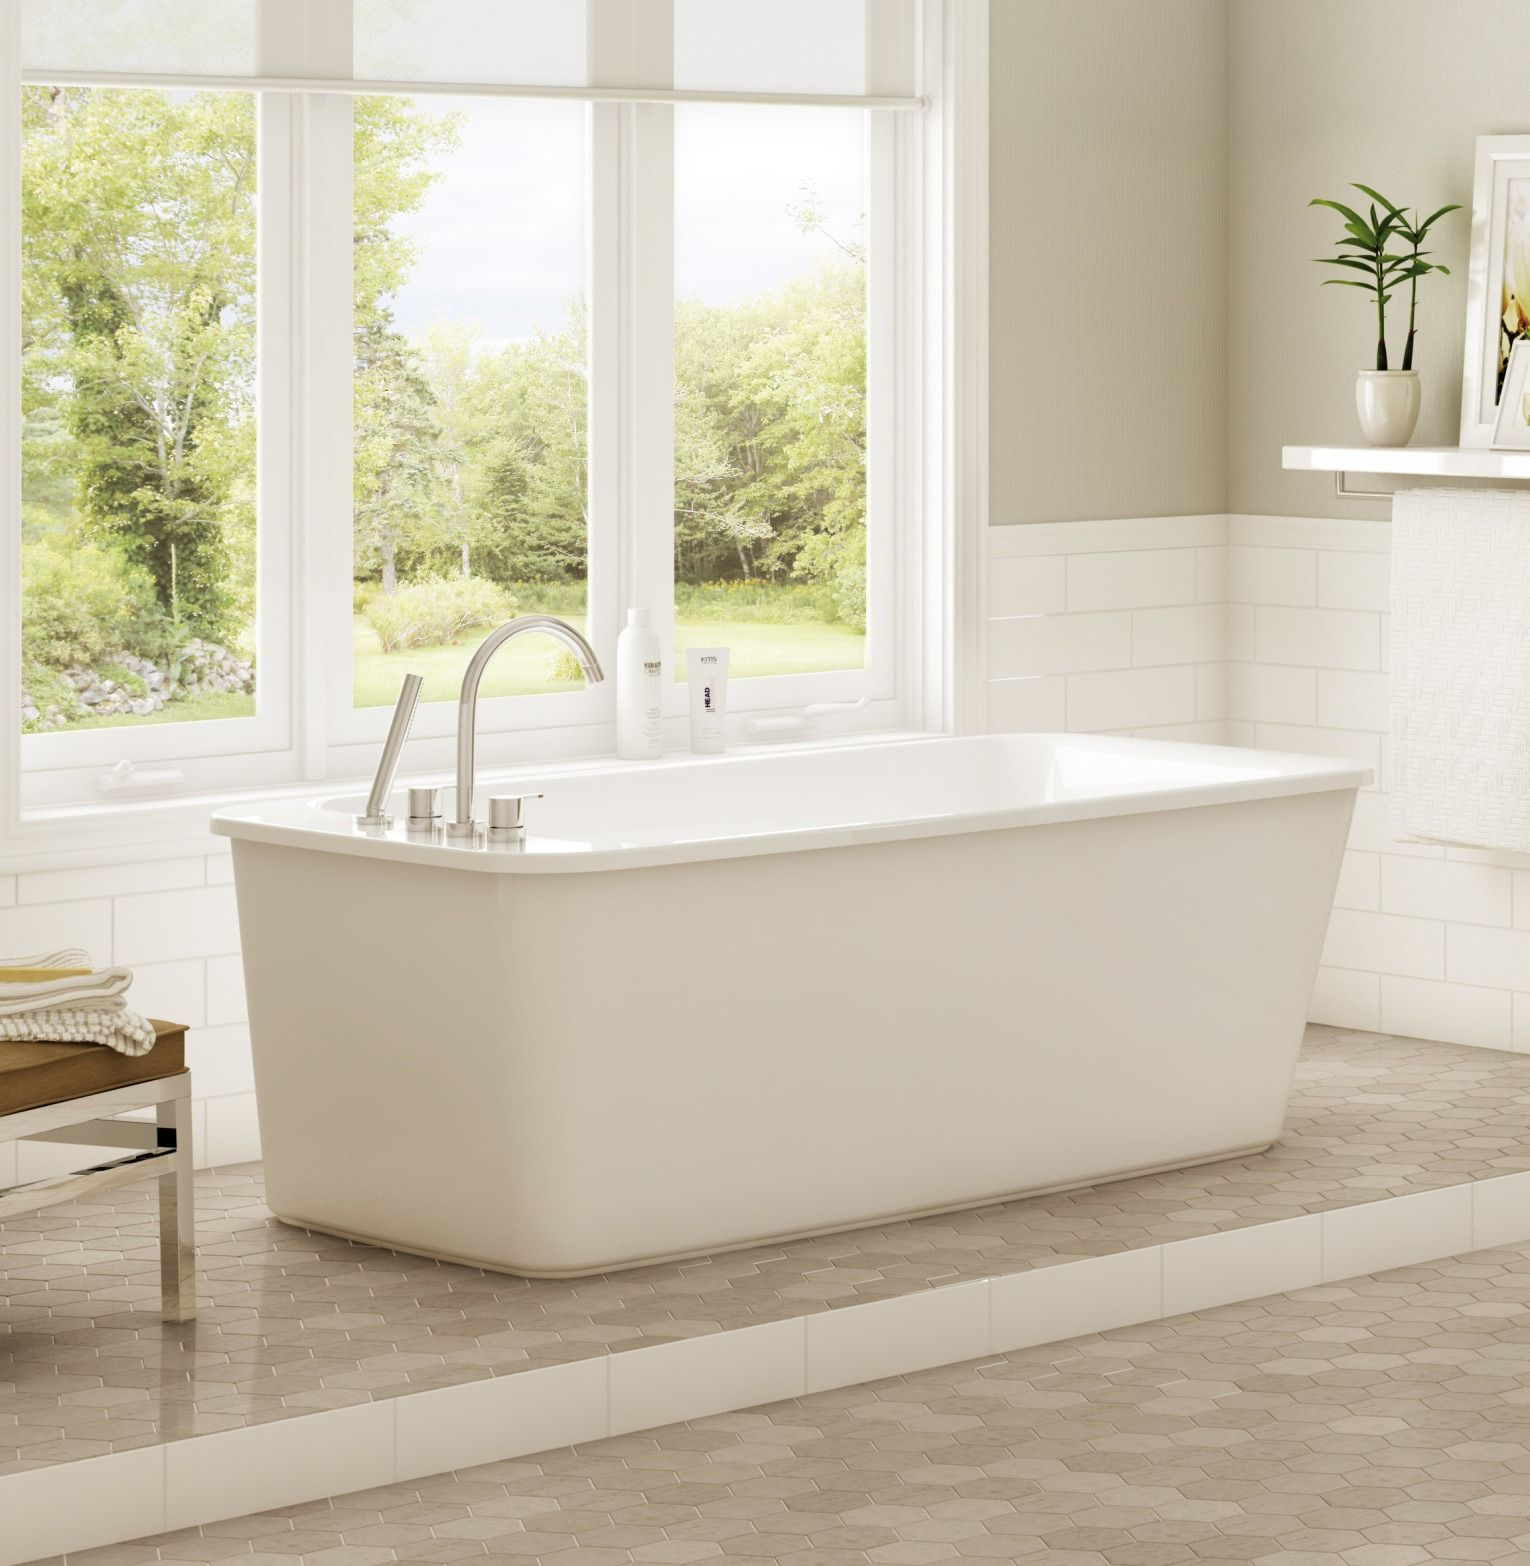 Build the bathroom of your dreams! Large yet luxurious, the Maax ...